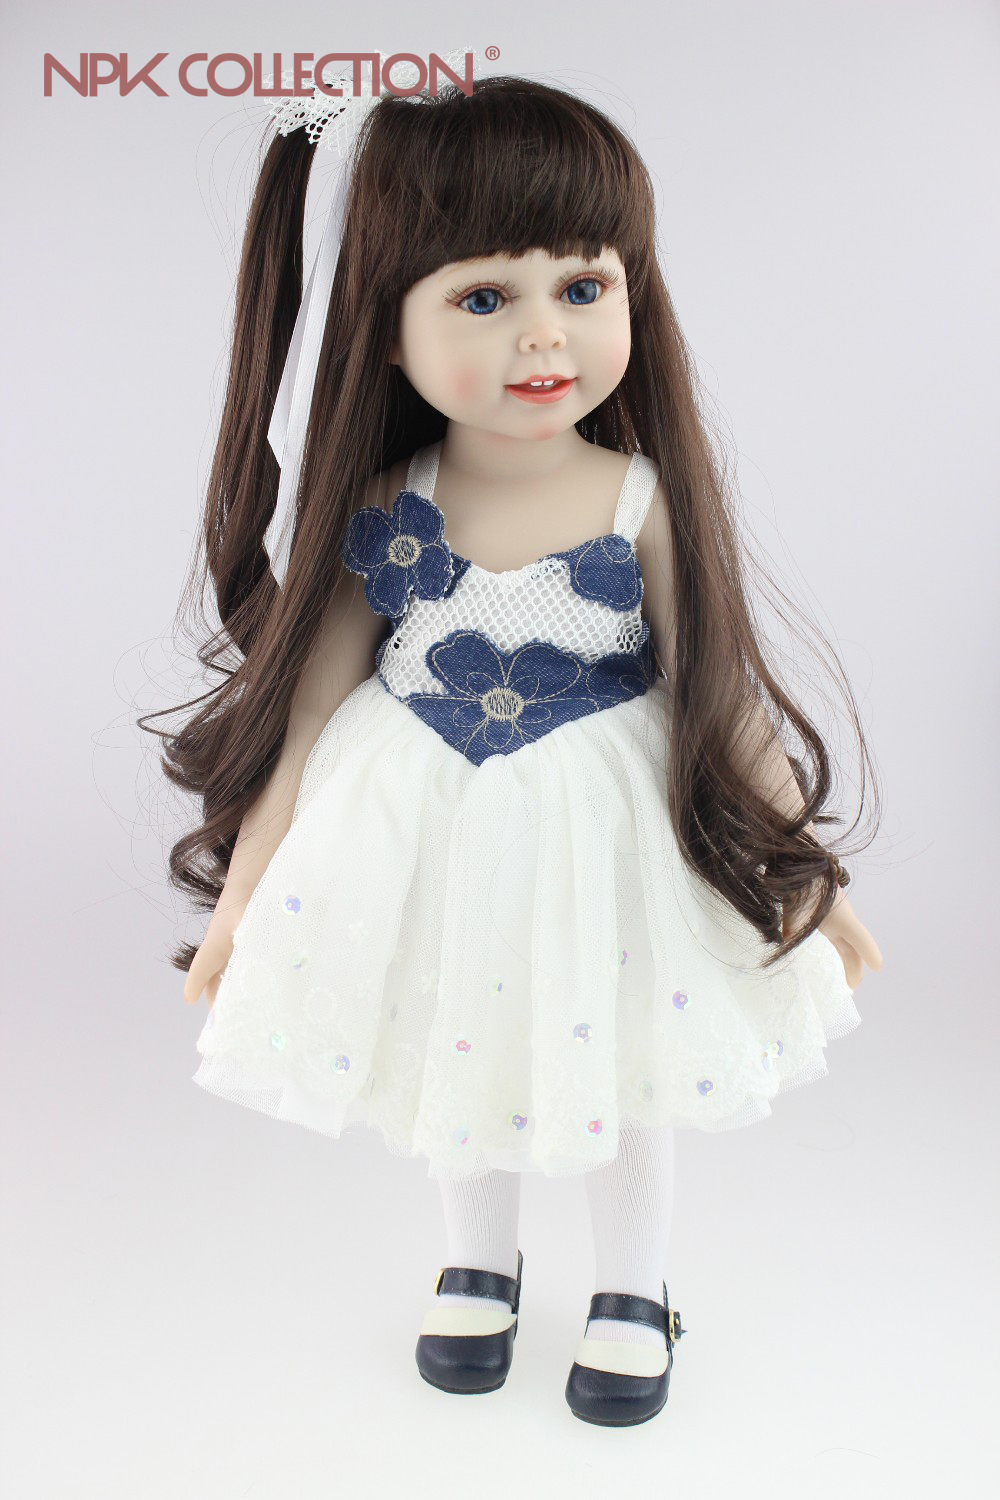 soft gentle touch 18inches American girl doll Journey Girl Dollie& me fashion doll birthday gift toys for girl children 148 type double potentiometer b50k handle length 10mm